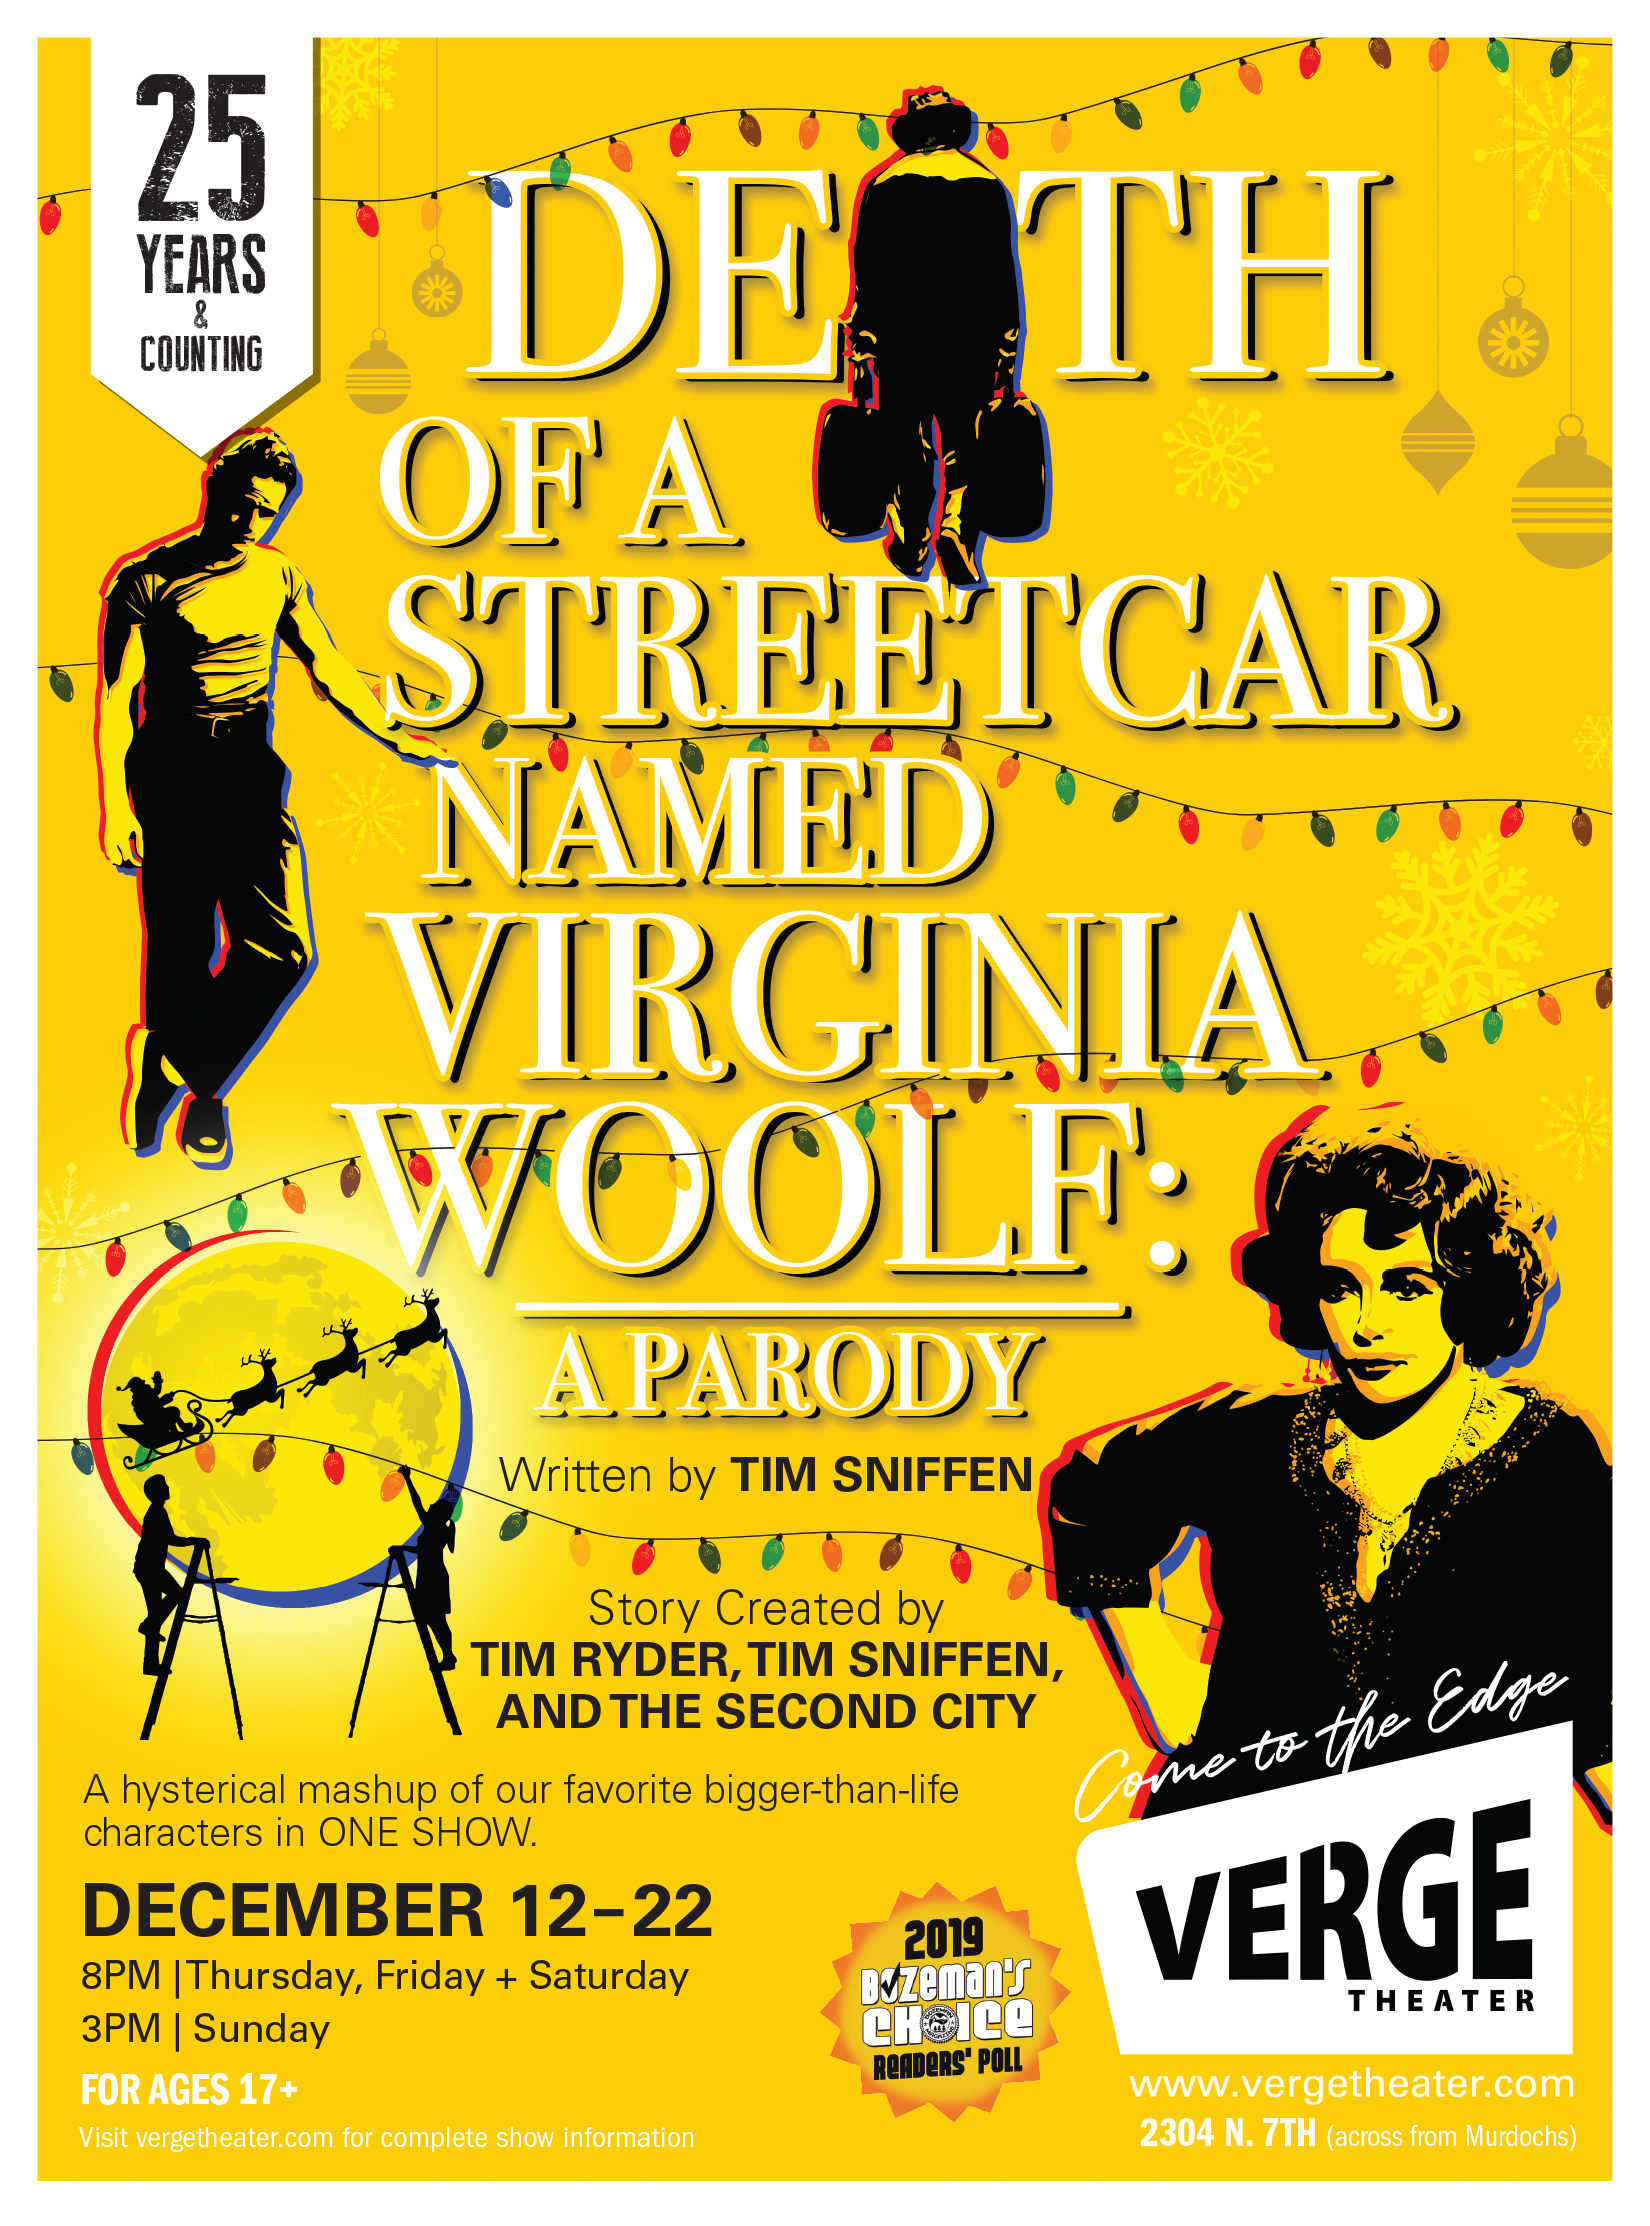 Death of a Streetcar Named Virginia Woolf Poster 11x17 for web.jpg